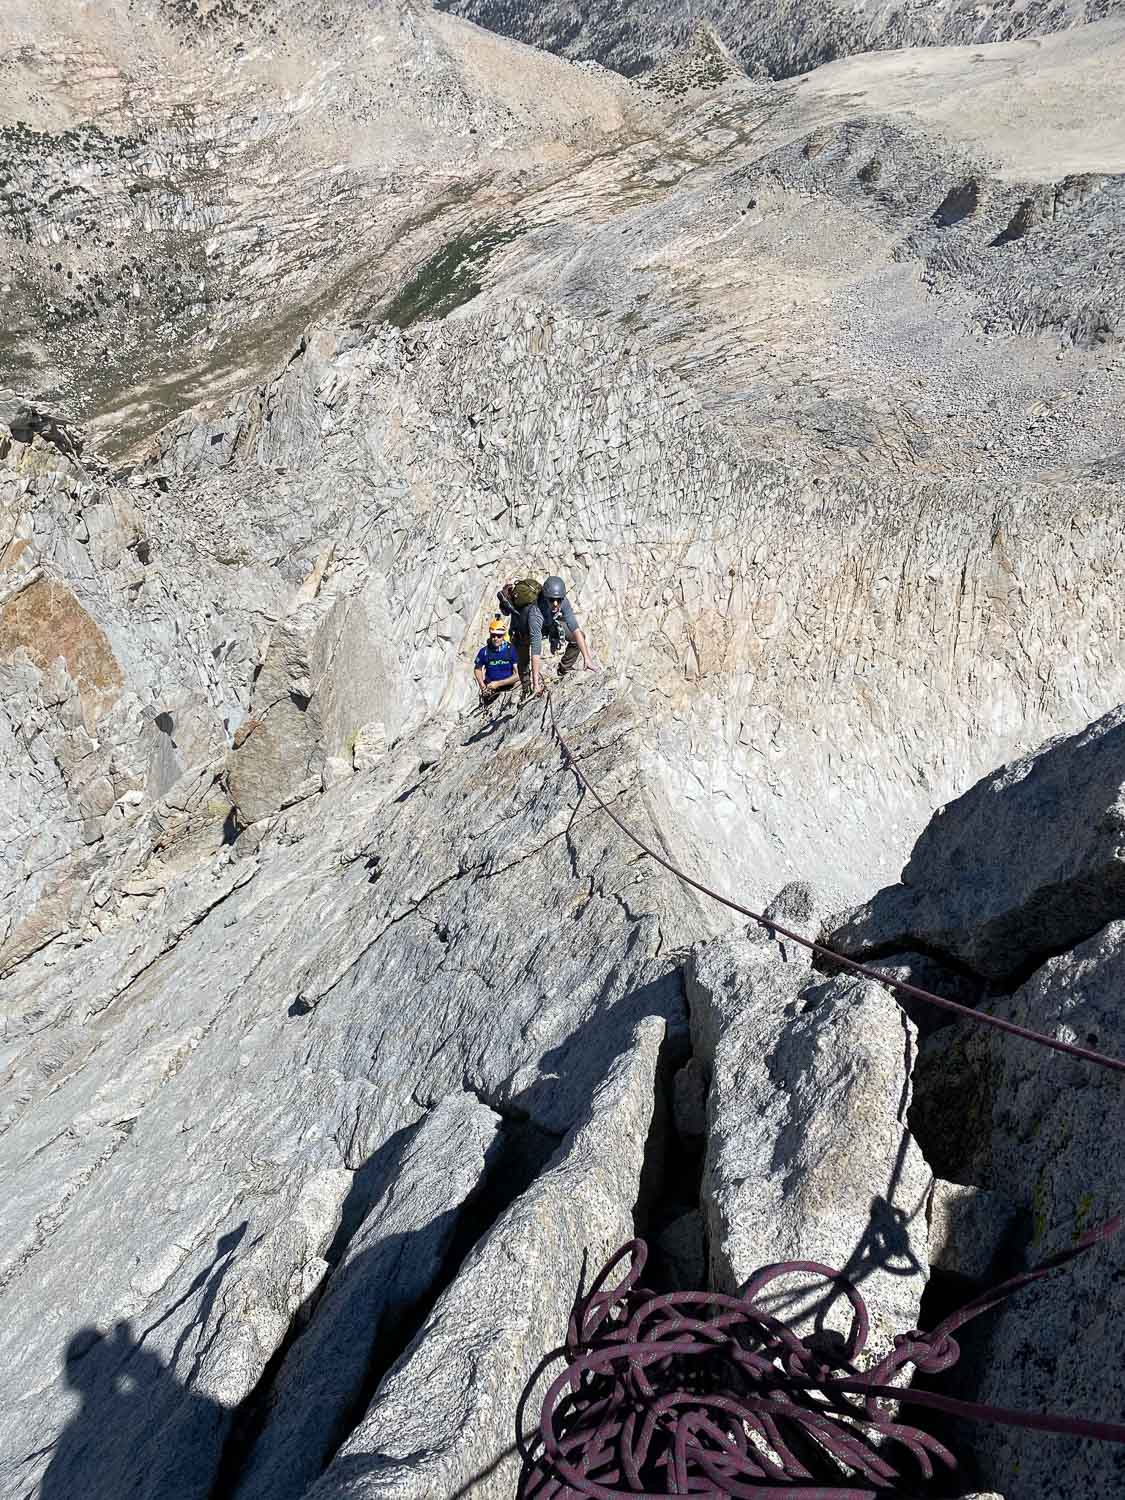 The final pitch on the North Ridge of Mount Conness